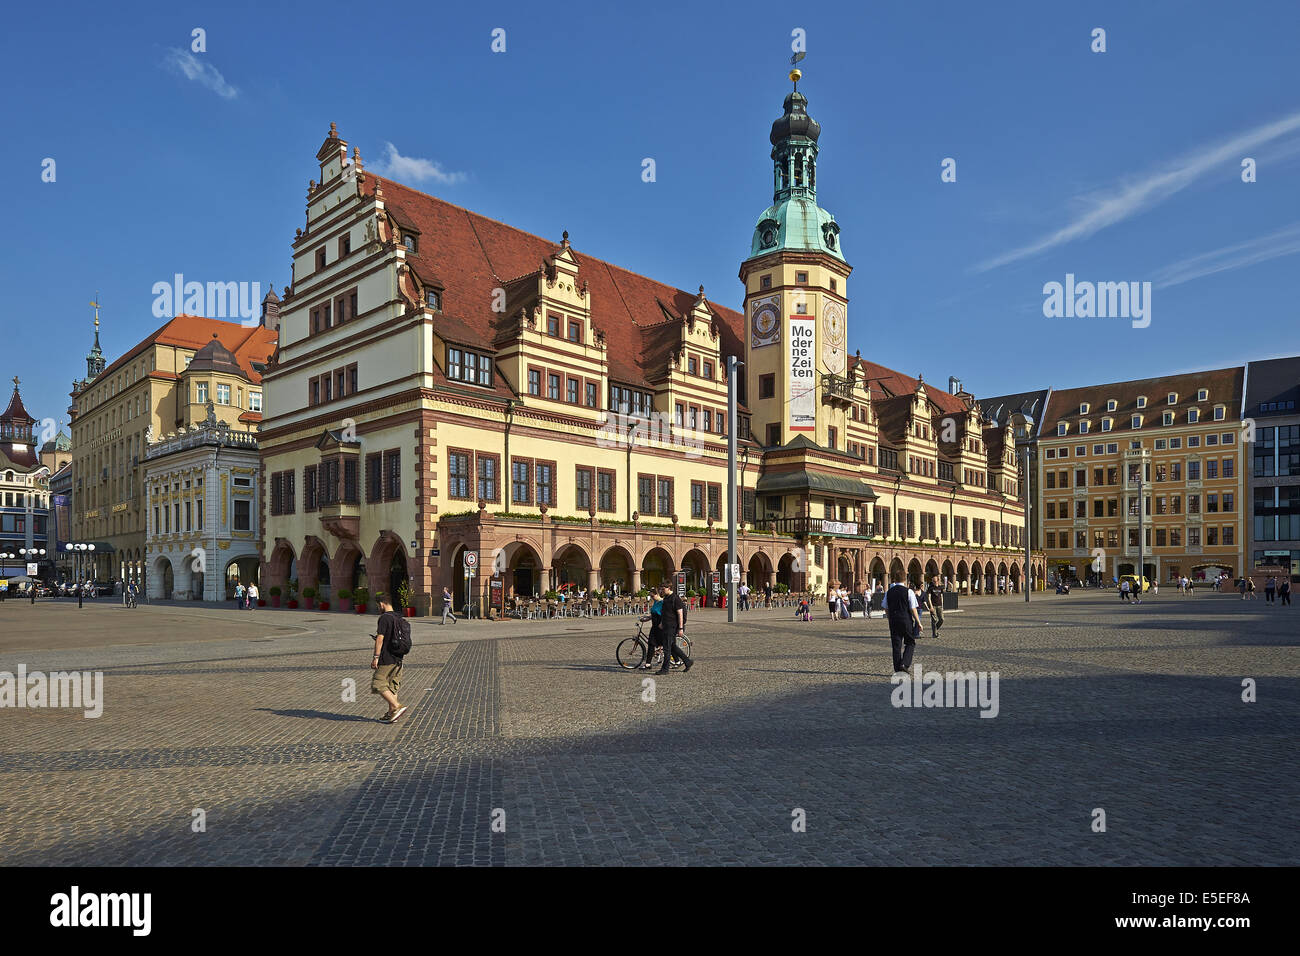 Old Town Hall in Leipzig, Germany - Stock Image